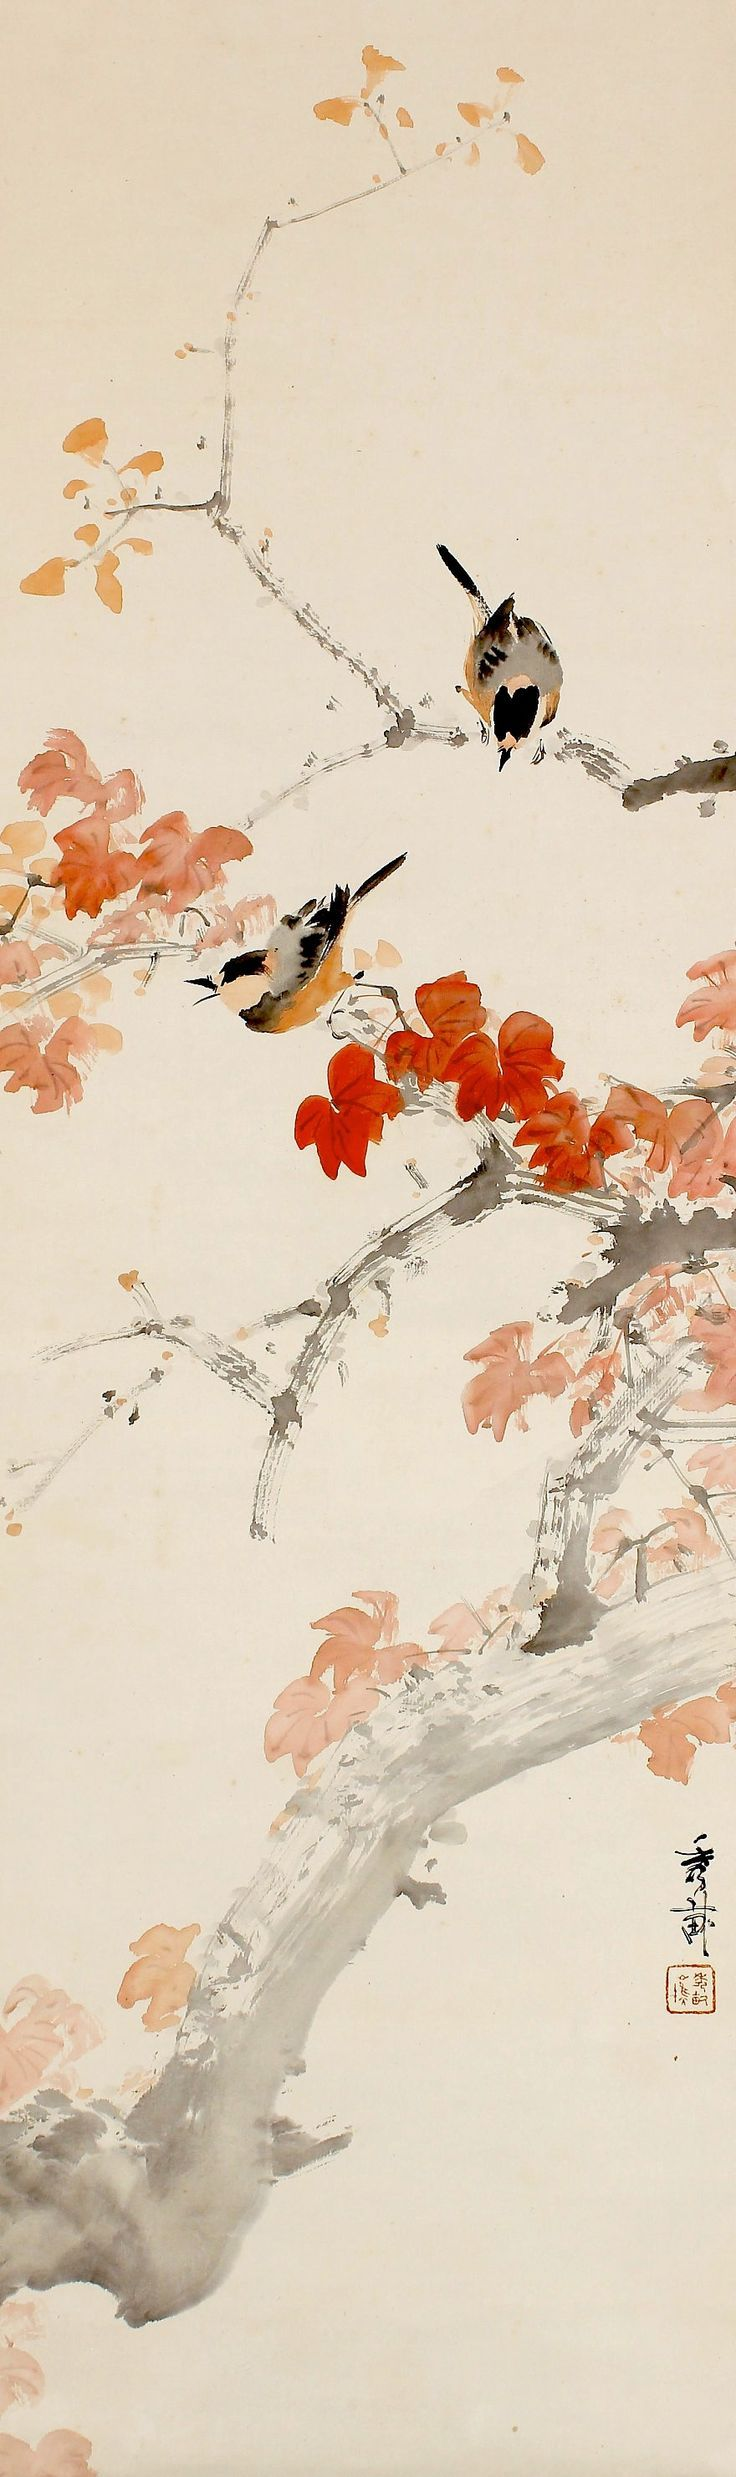 Ikegami Shuho 池上秀畝 (1874-1944), Autumn Sparrow